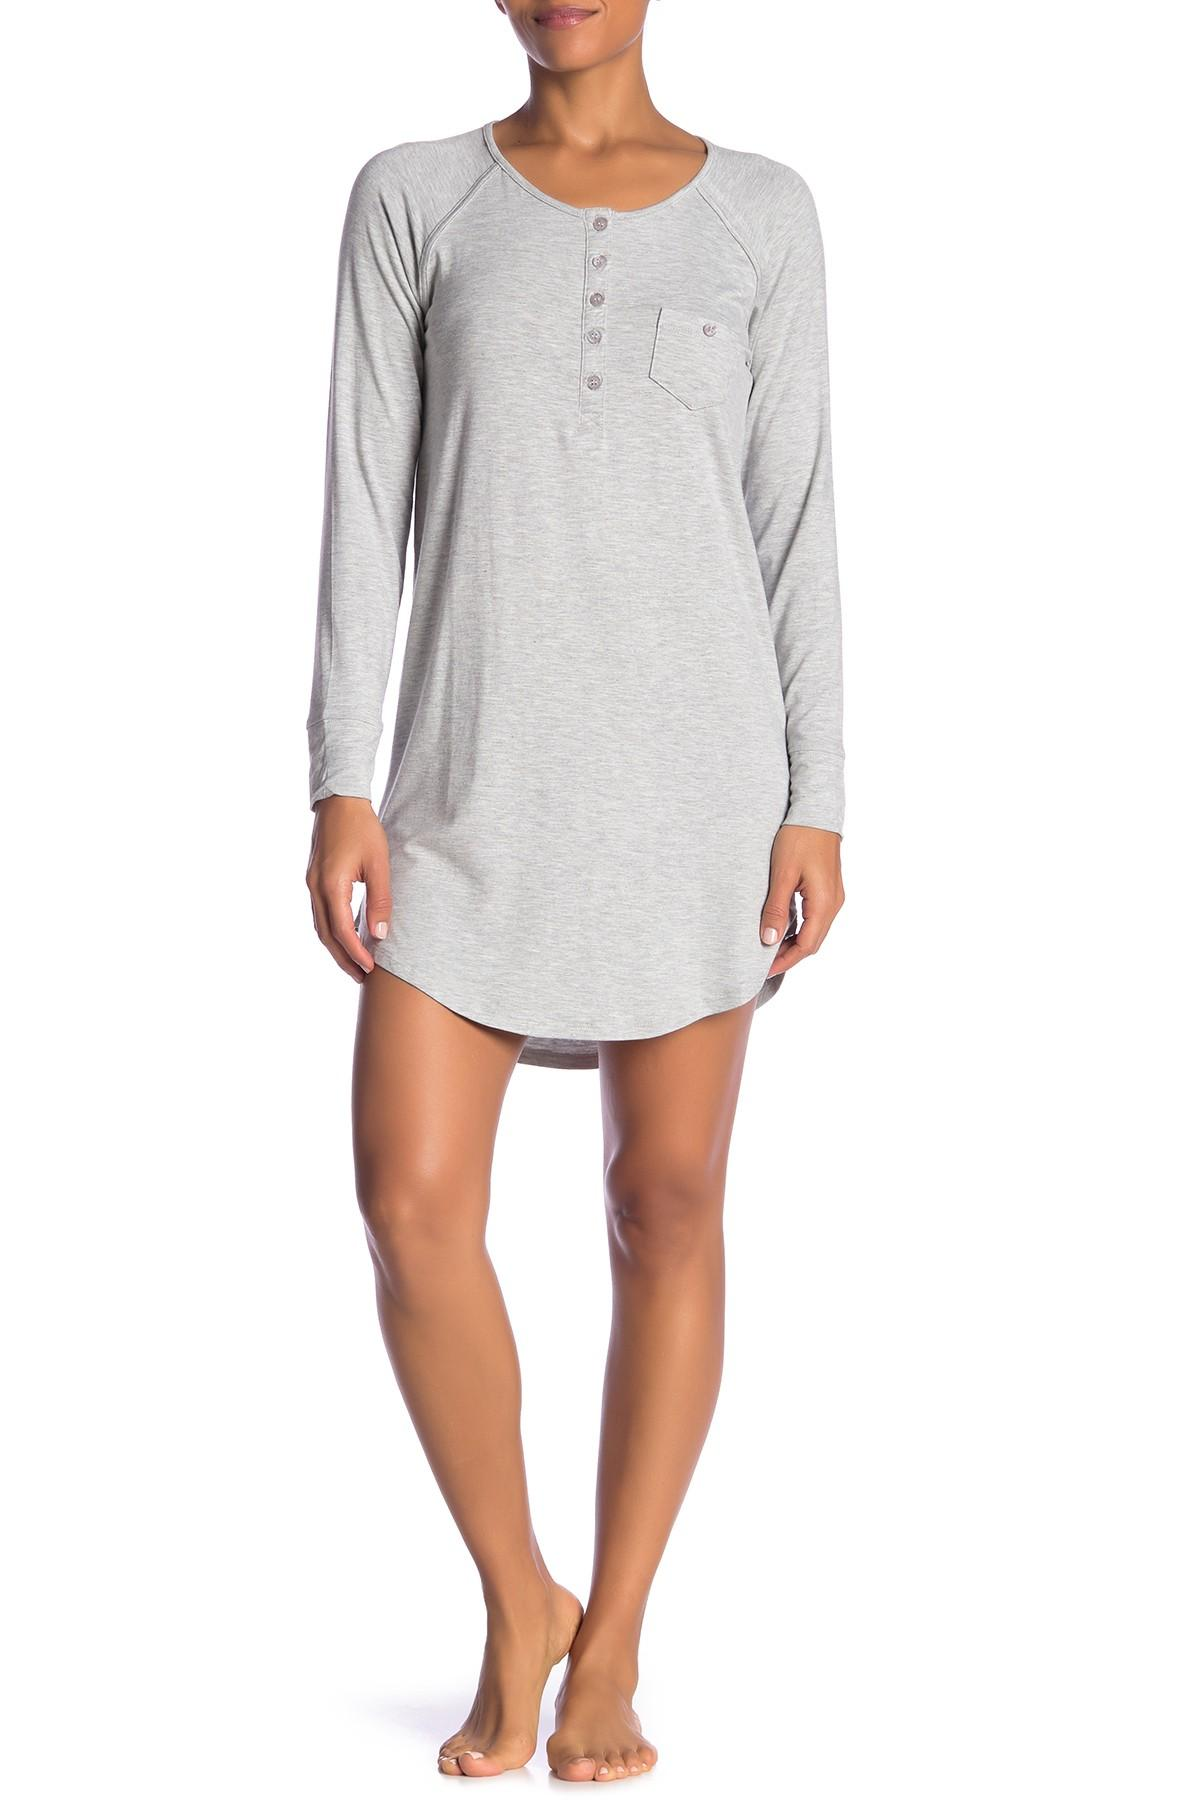 fac1f3292b Lyst - Juicy Couture I Dream Of Juicy Pajama Shirt in Gray